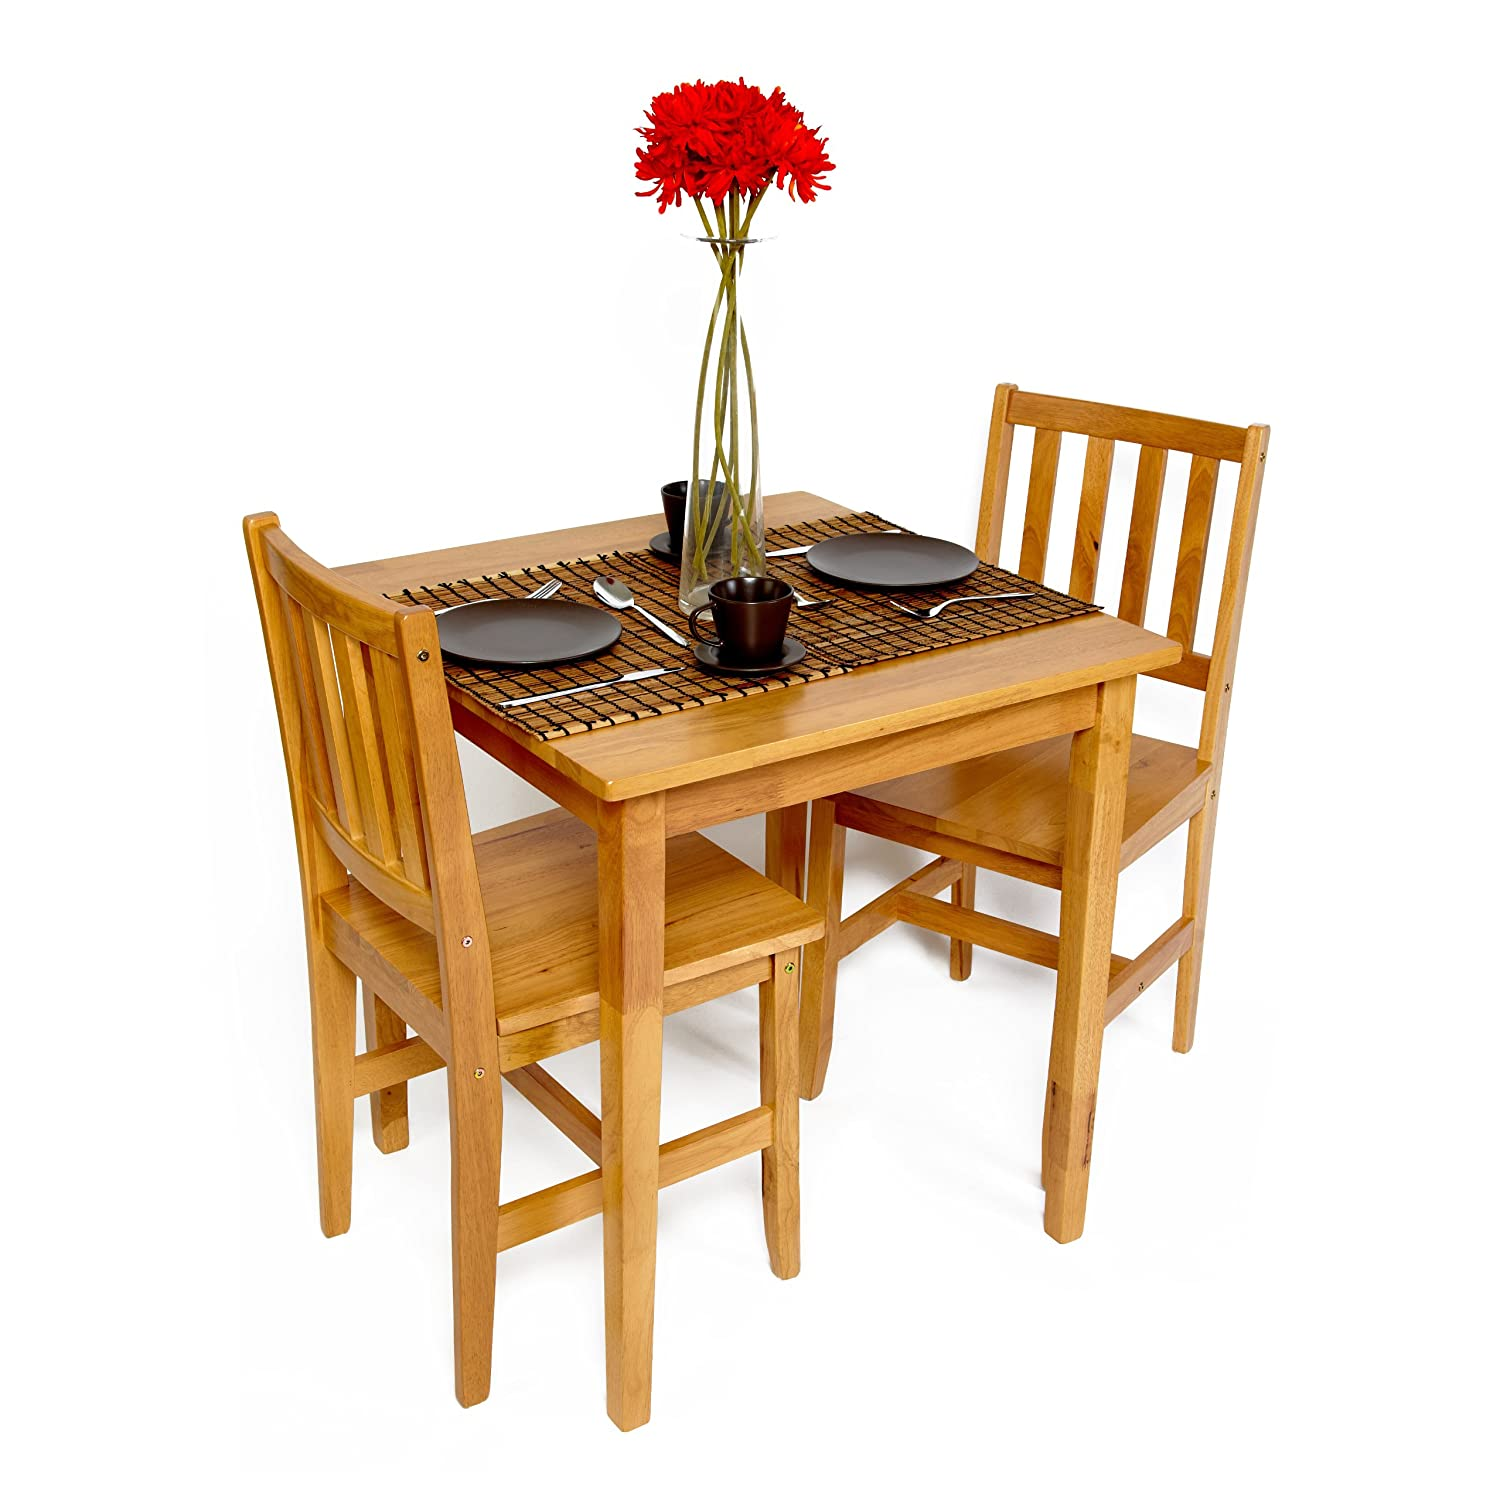 Table and chairs set dining bistro small cafe tables wood for Kitchen table and chairs set